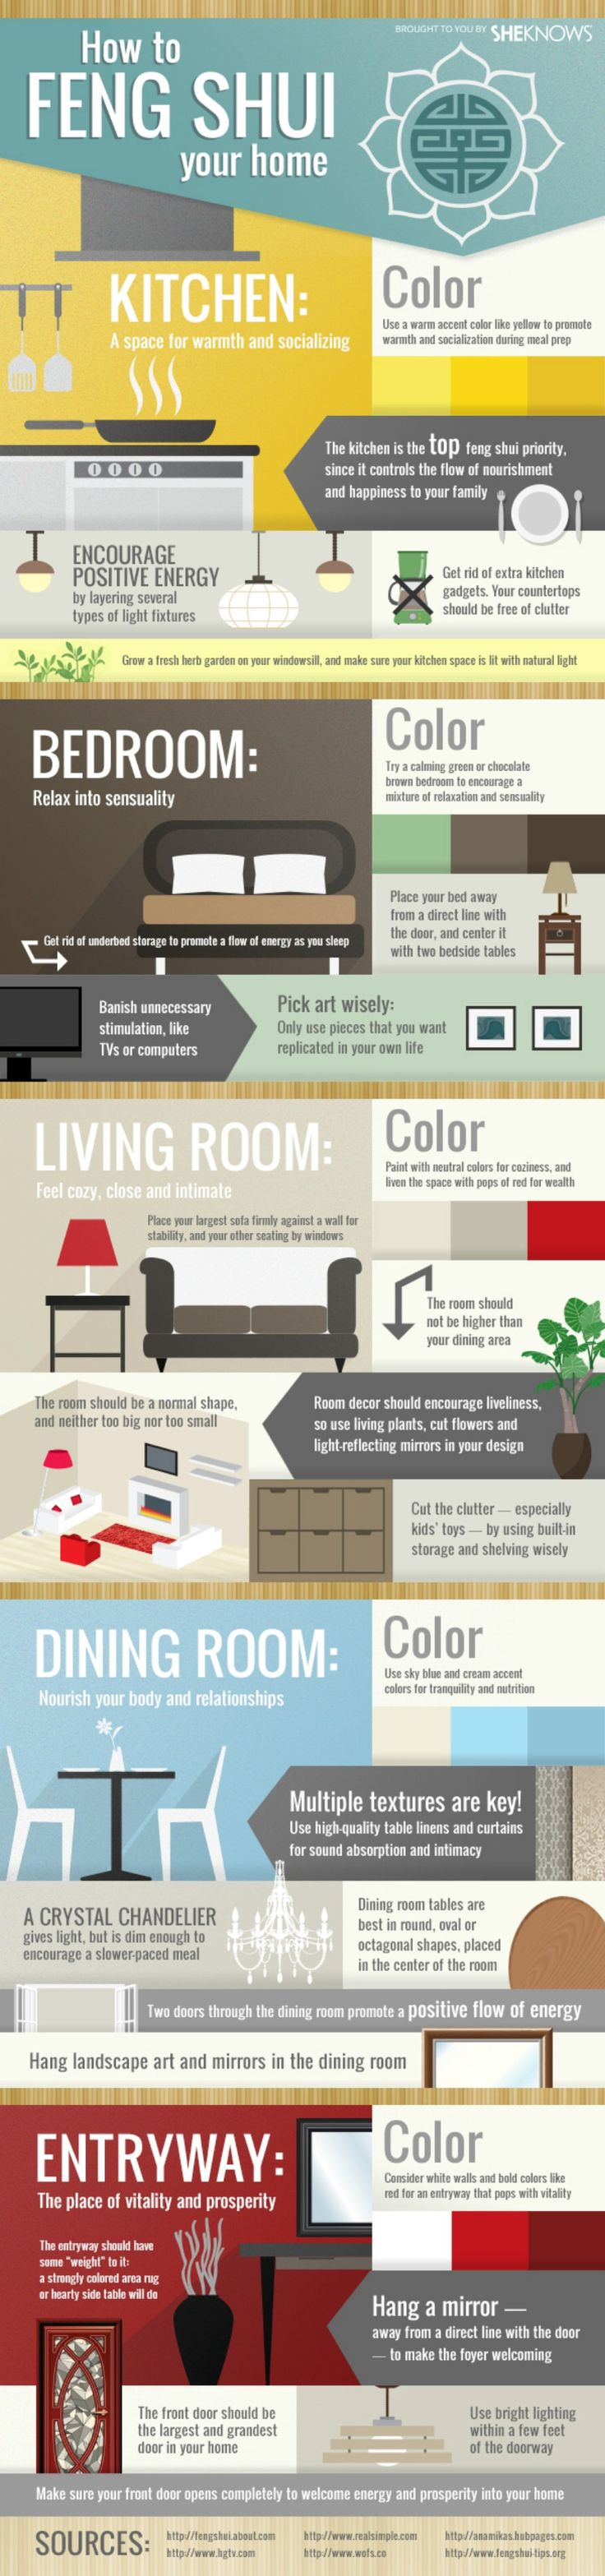 How To Feng Shui Your Home   50 Amazingly Clever Cheat Sheets To Simplify